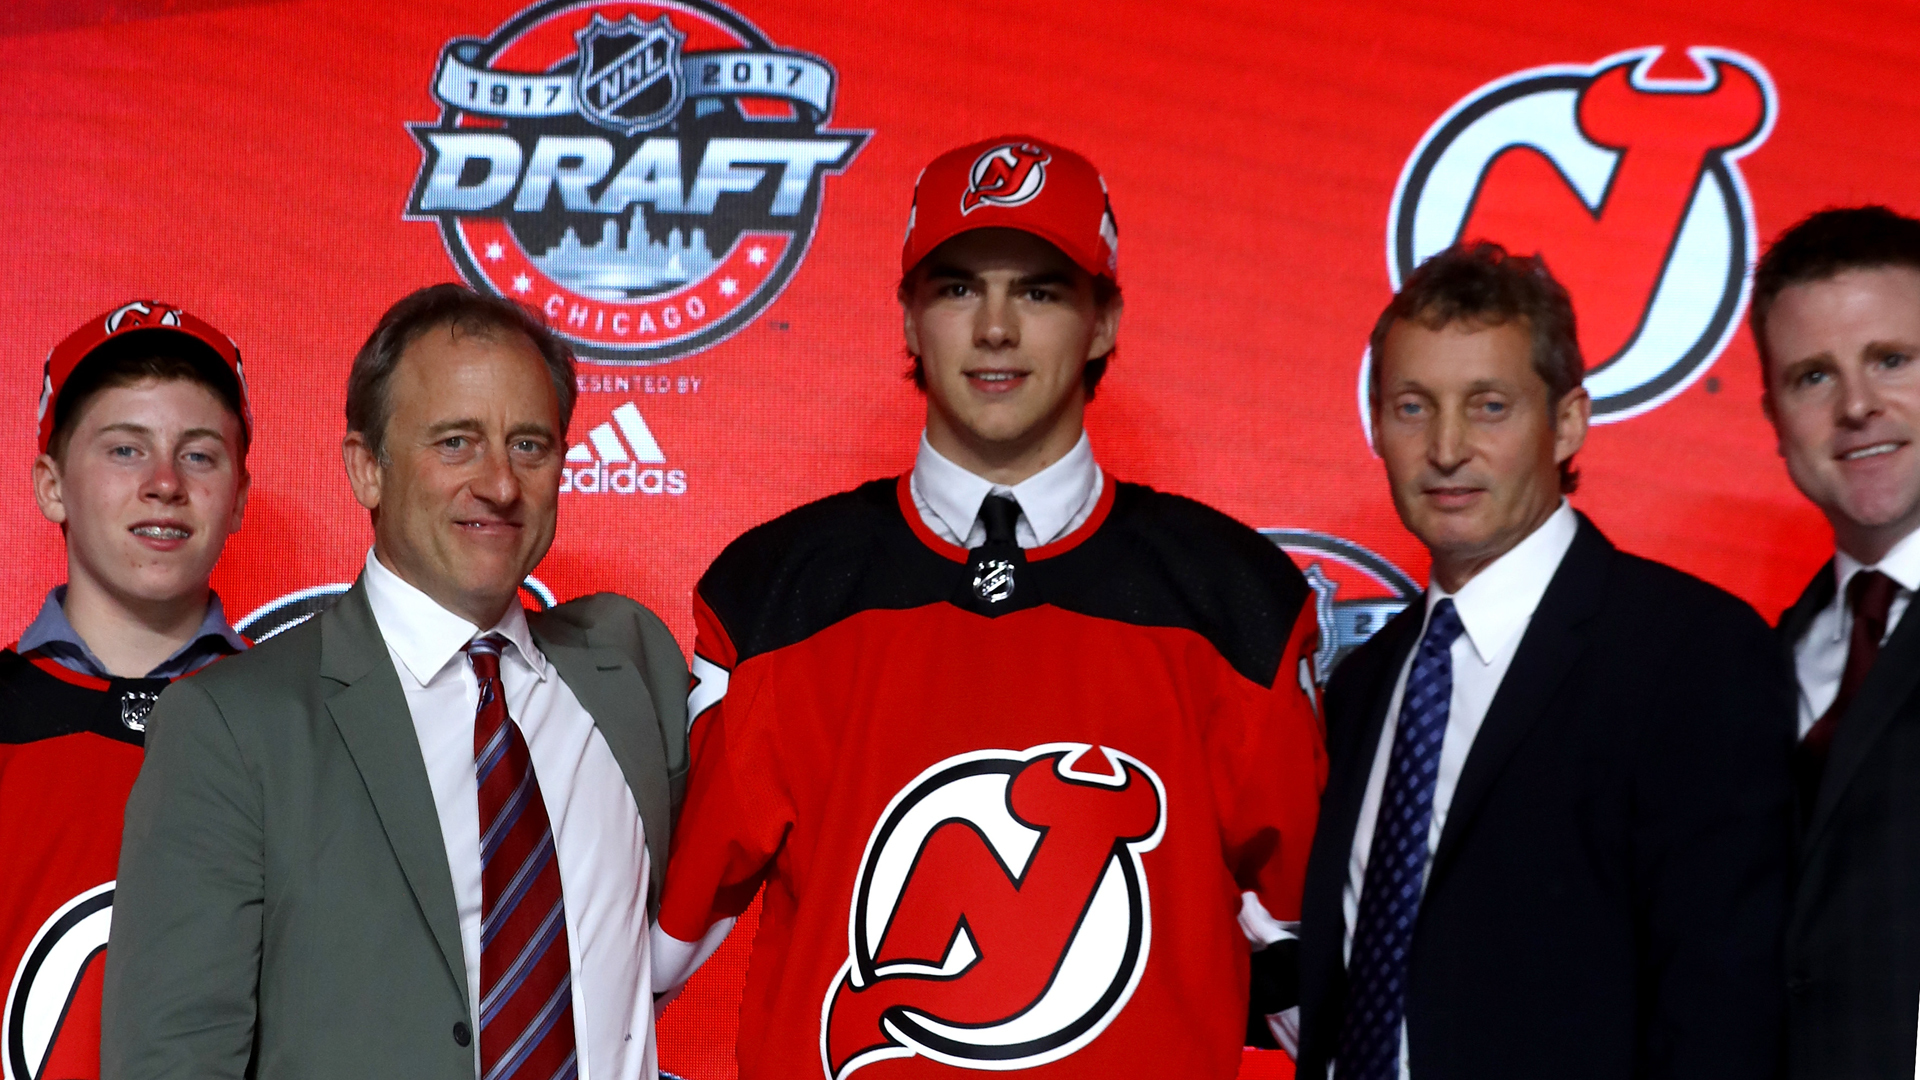 c8116a8a5 New Jersey Devils select Nico Hischier with No. 1 pick in 2017 NHL draft